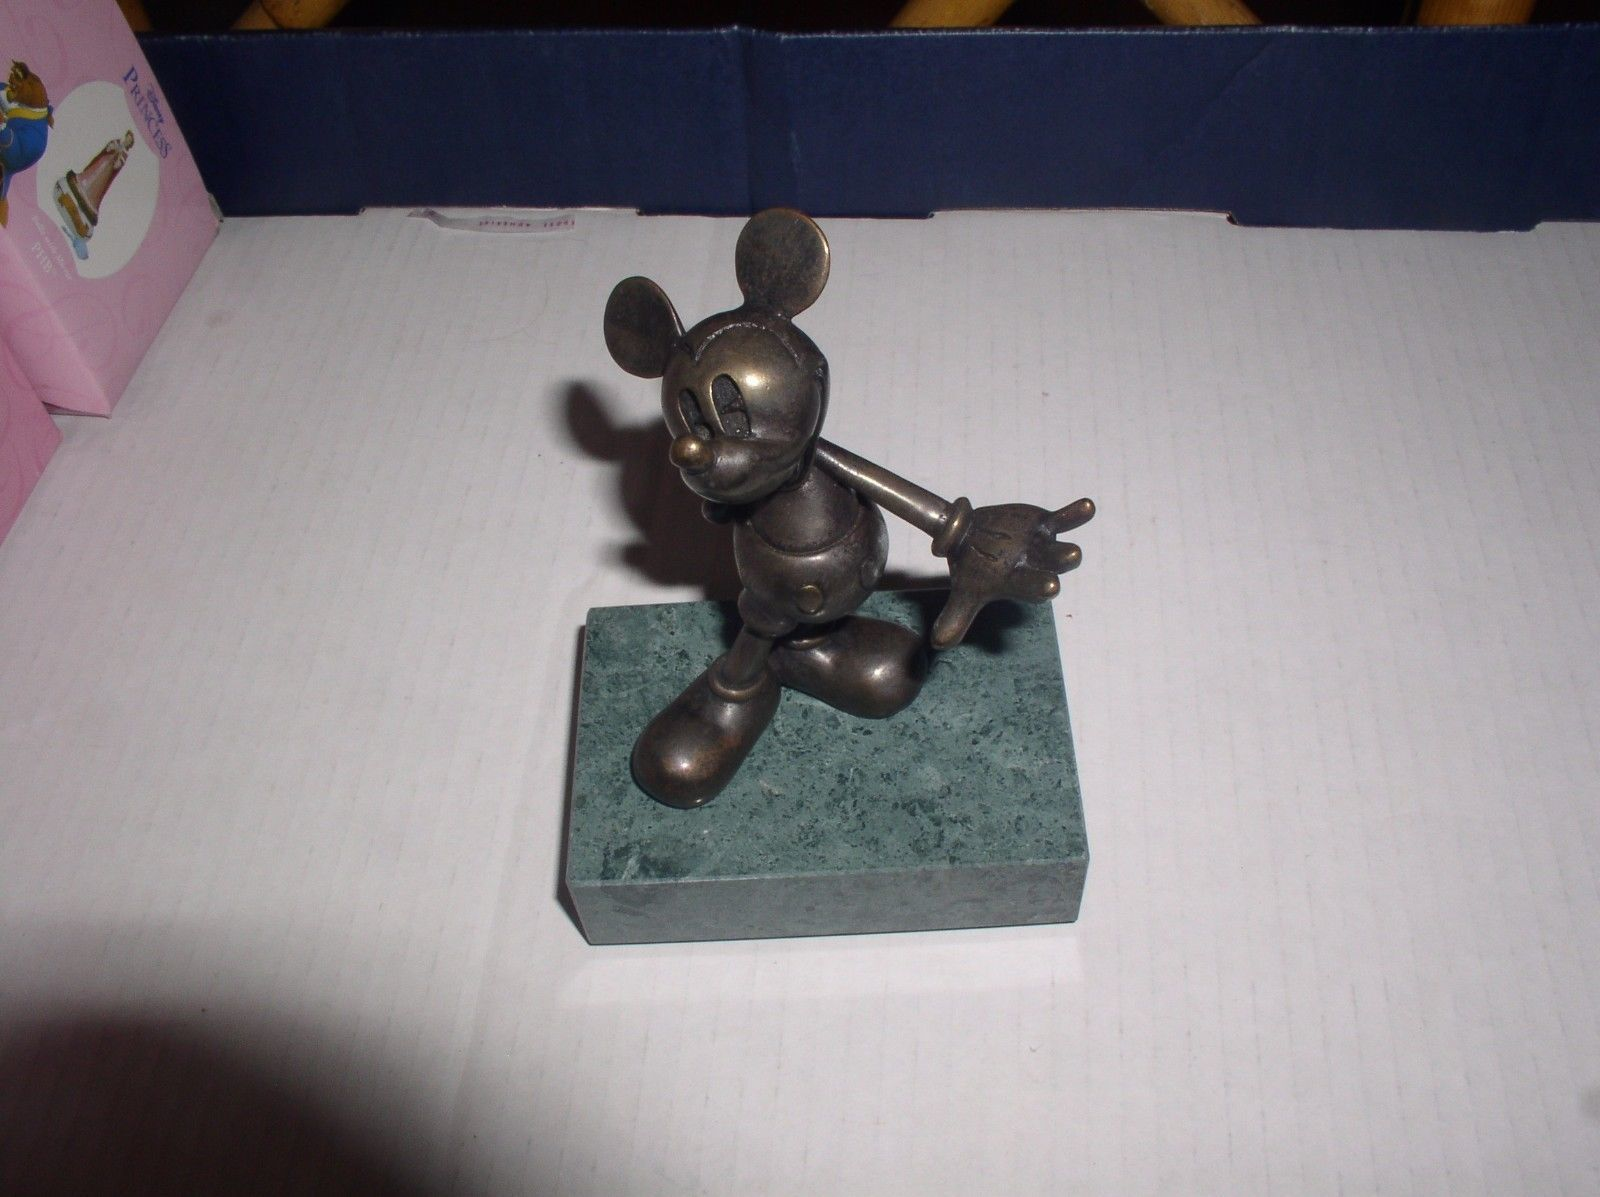 Disney Mickey Mouse Bronze LE Chilmark Limited Edition of 75 Orignial box #17/75 - $395.00